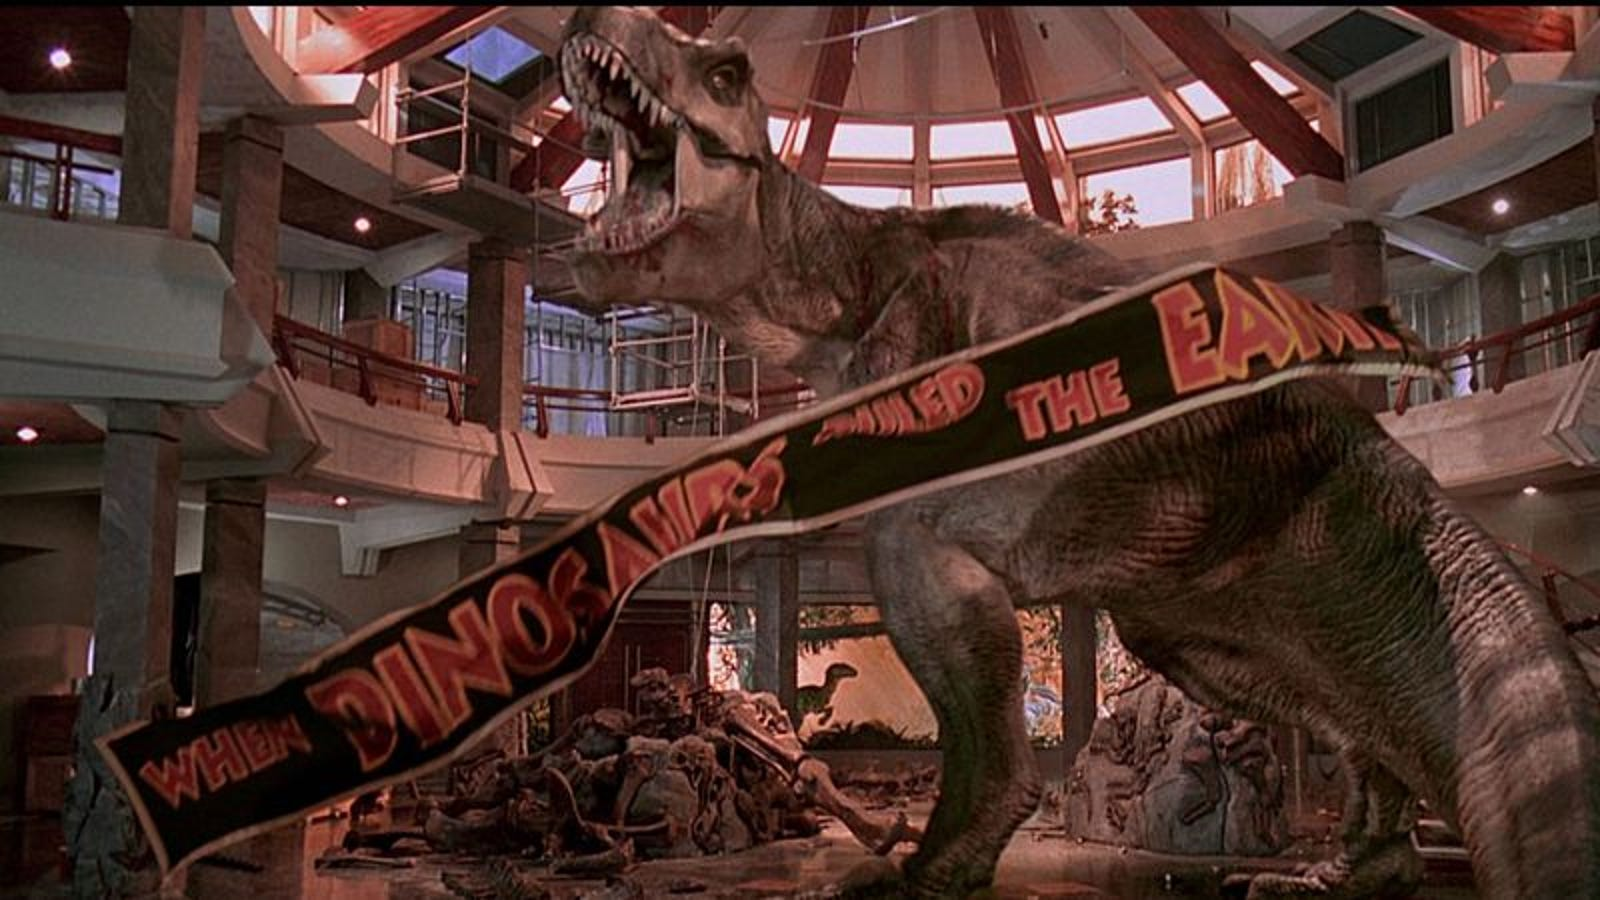 25 years later, Jurassic Park still feels like the quintessential